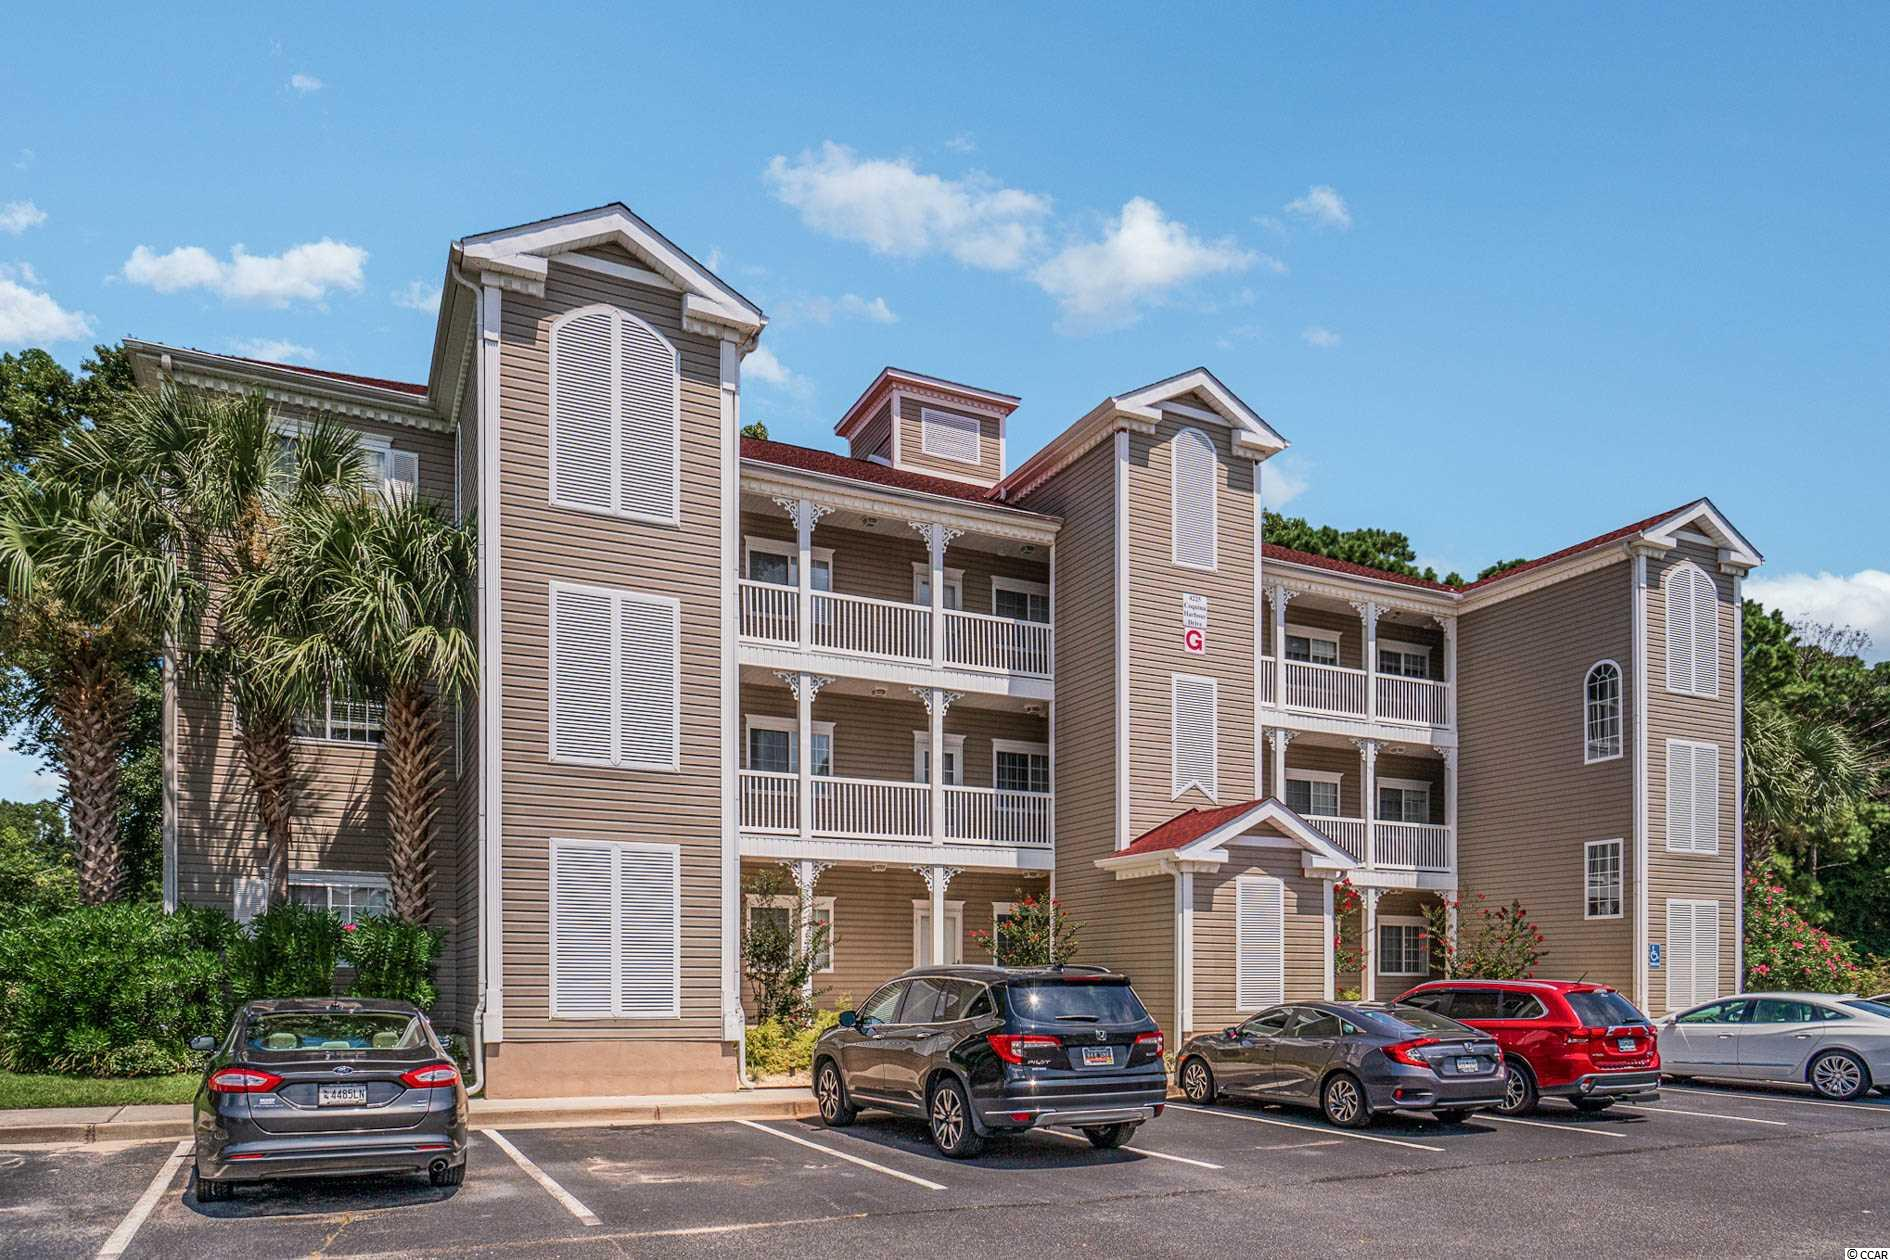 Rare opportunity to own a 3 bedroom condo in Little River. If you enjoy the outdoor including golf, tennis and swimming this is a perfect fit for you. Call now with questions. At this time all showings are via virtual tour. The 3D matterport link is availble. Please call now for that link!